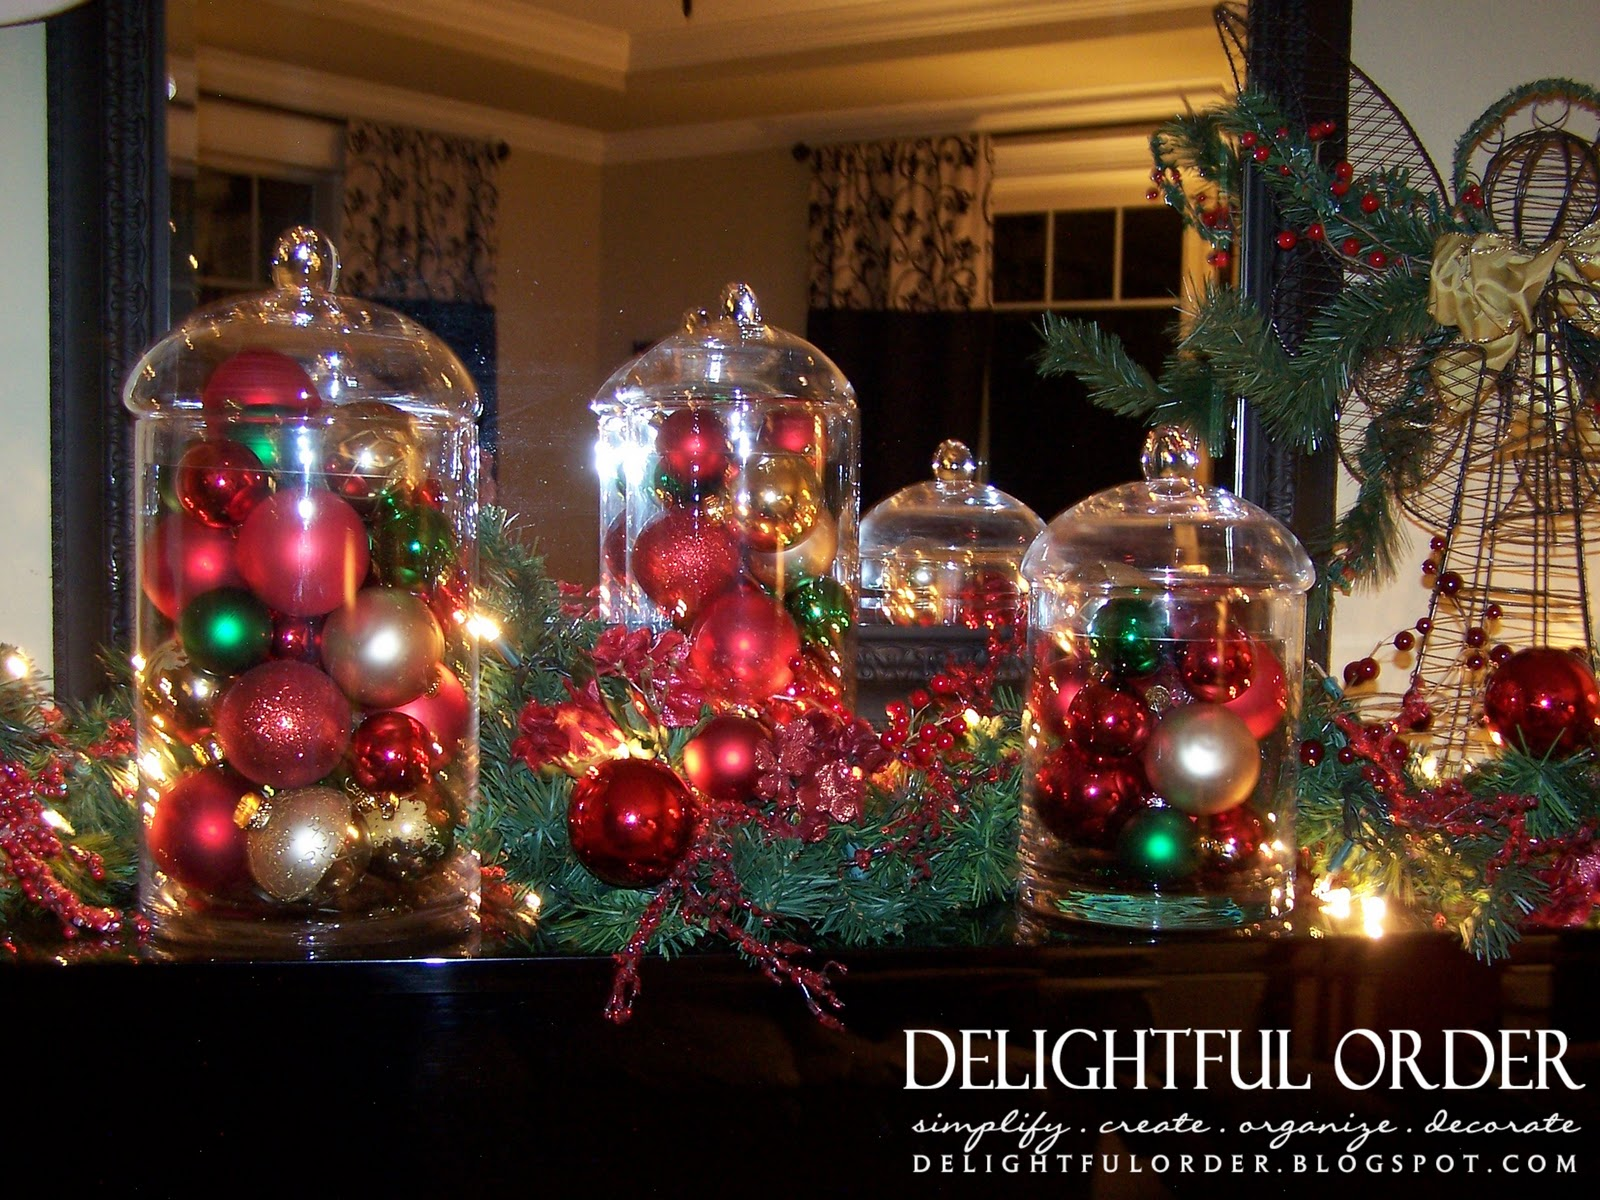 Delightful Order: Christmas Ornament Glass Jars